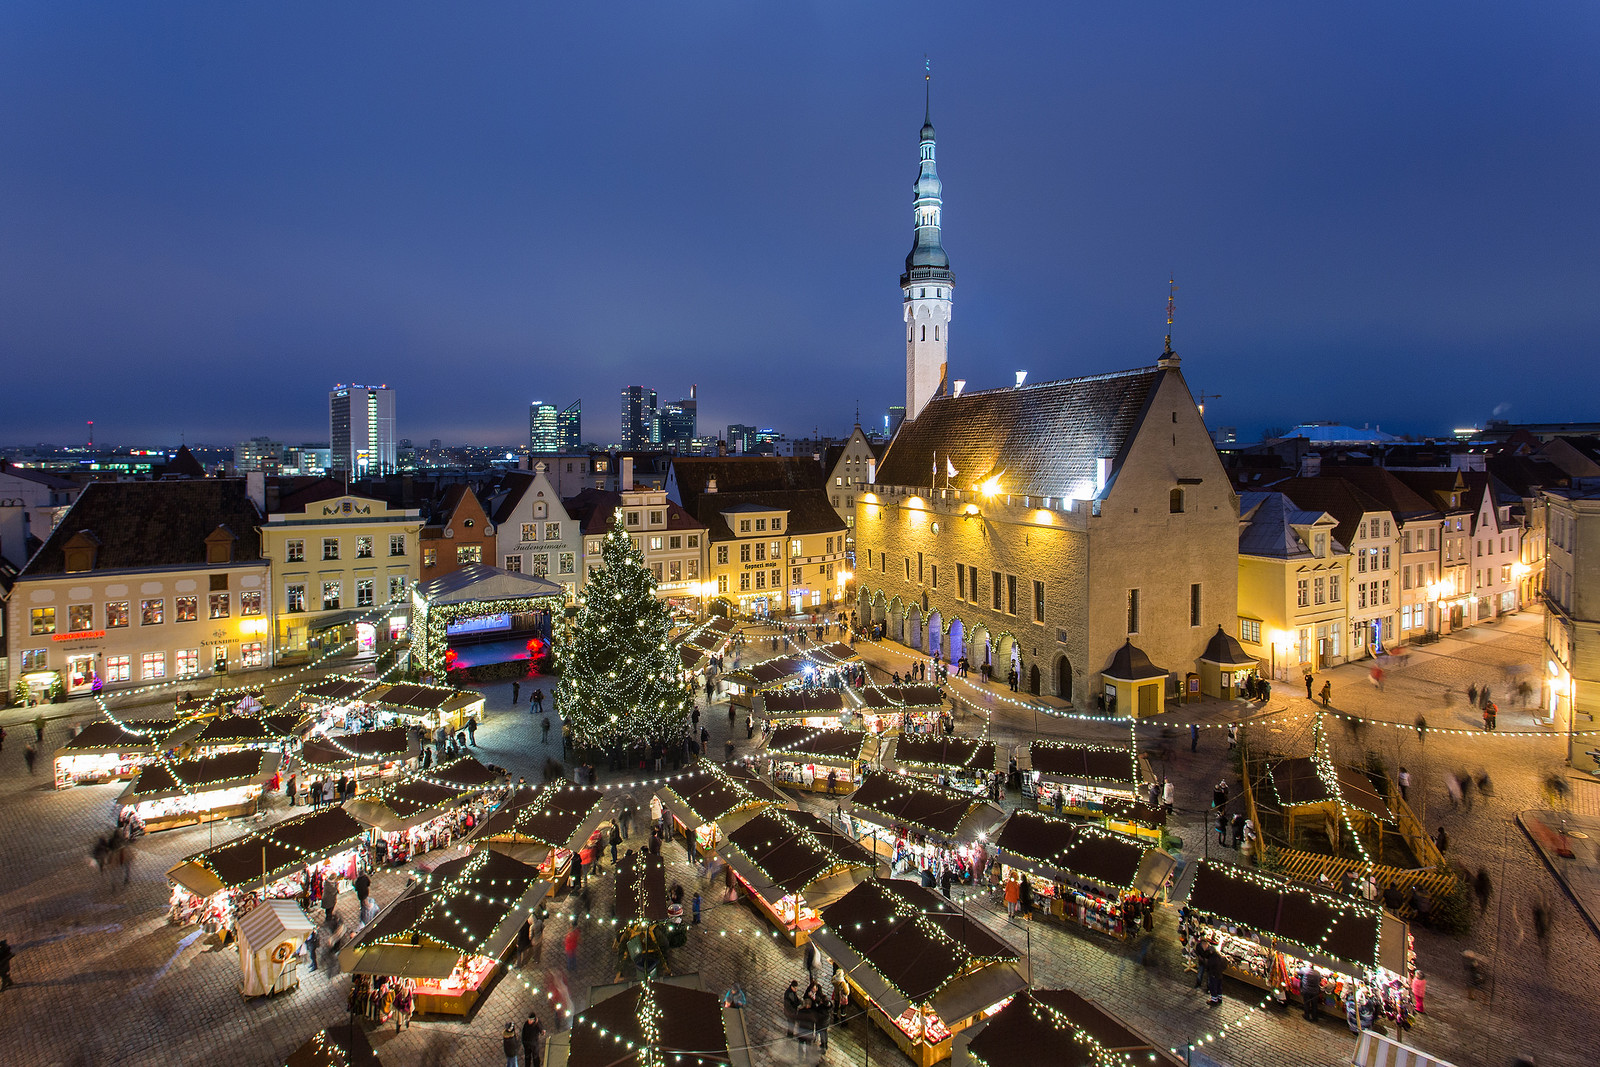 Christmas market at Tallinn, Estonia Credit Sergei Zjuganov